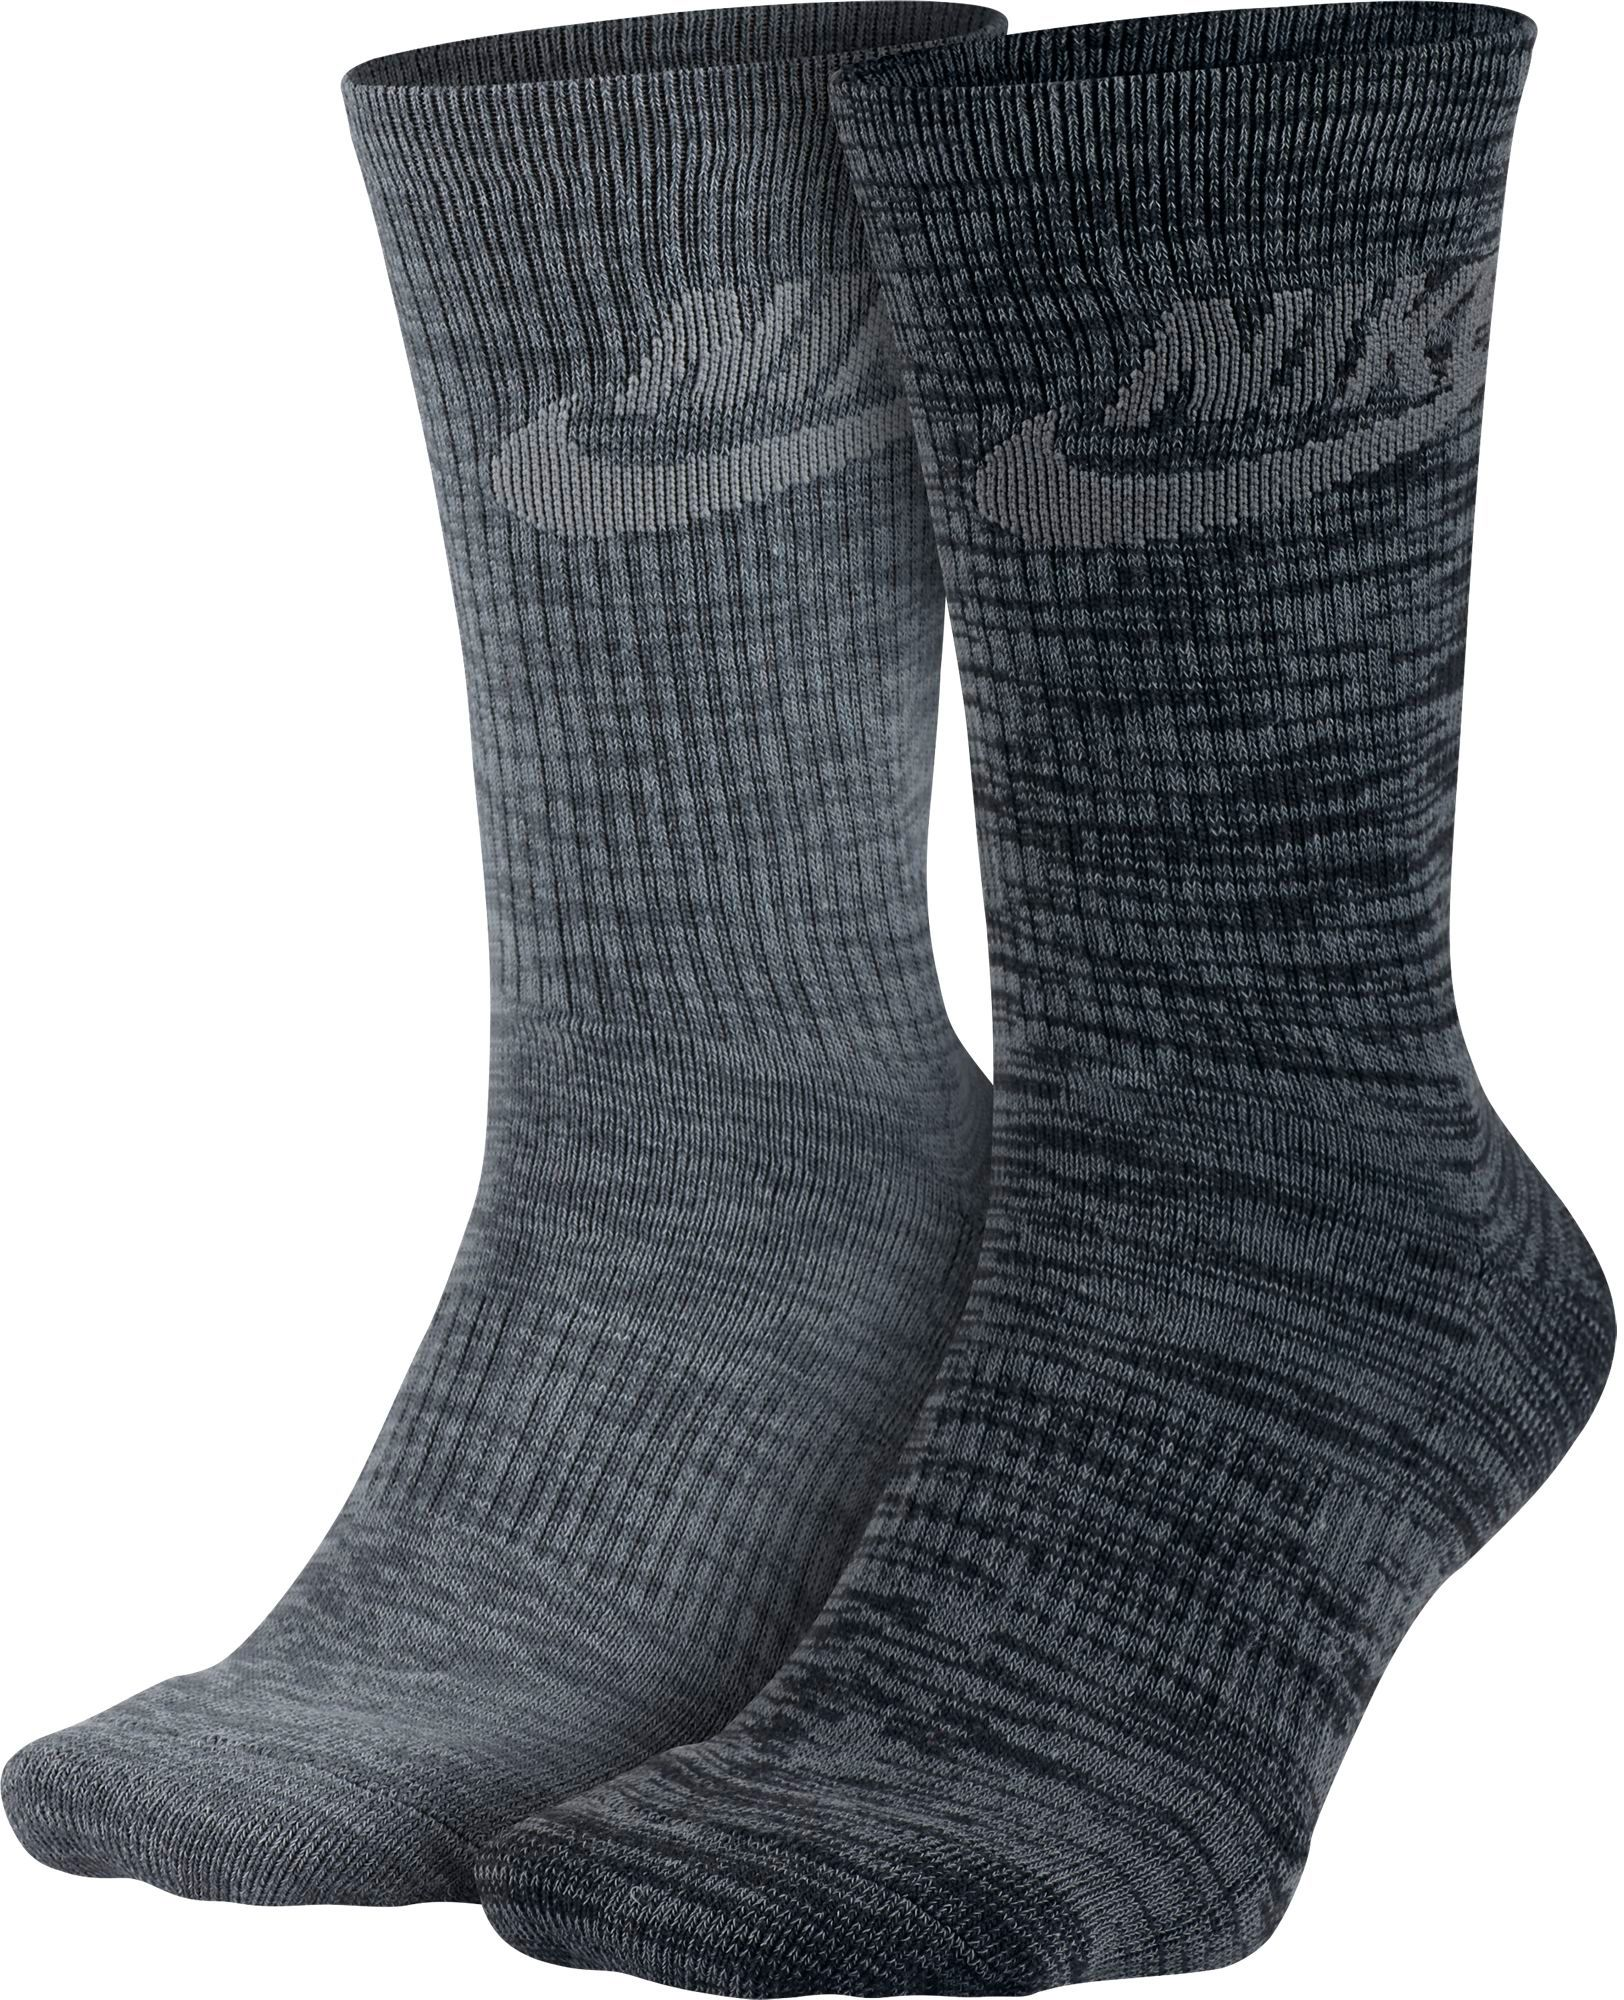 Nike Men's Sportswear Advance Crew Socks 2 Pack. 0:00. 0:00 / 0:00.  noImageFound ???